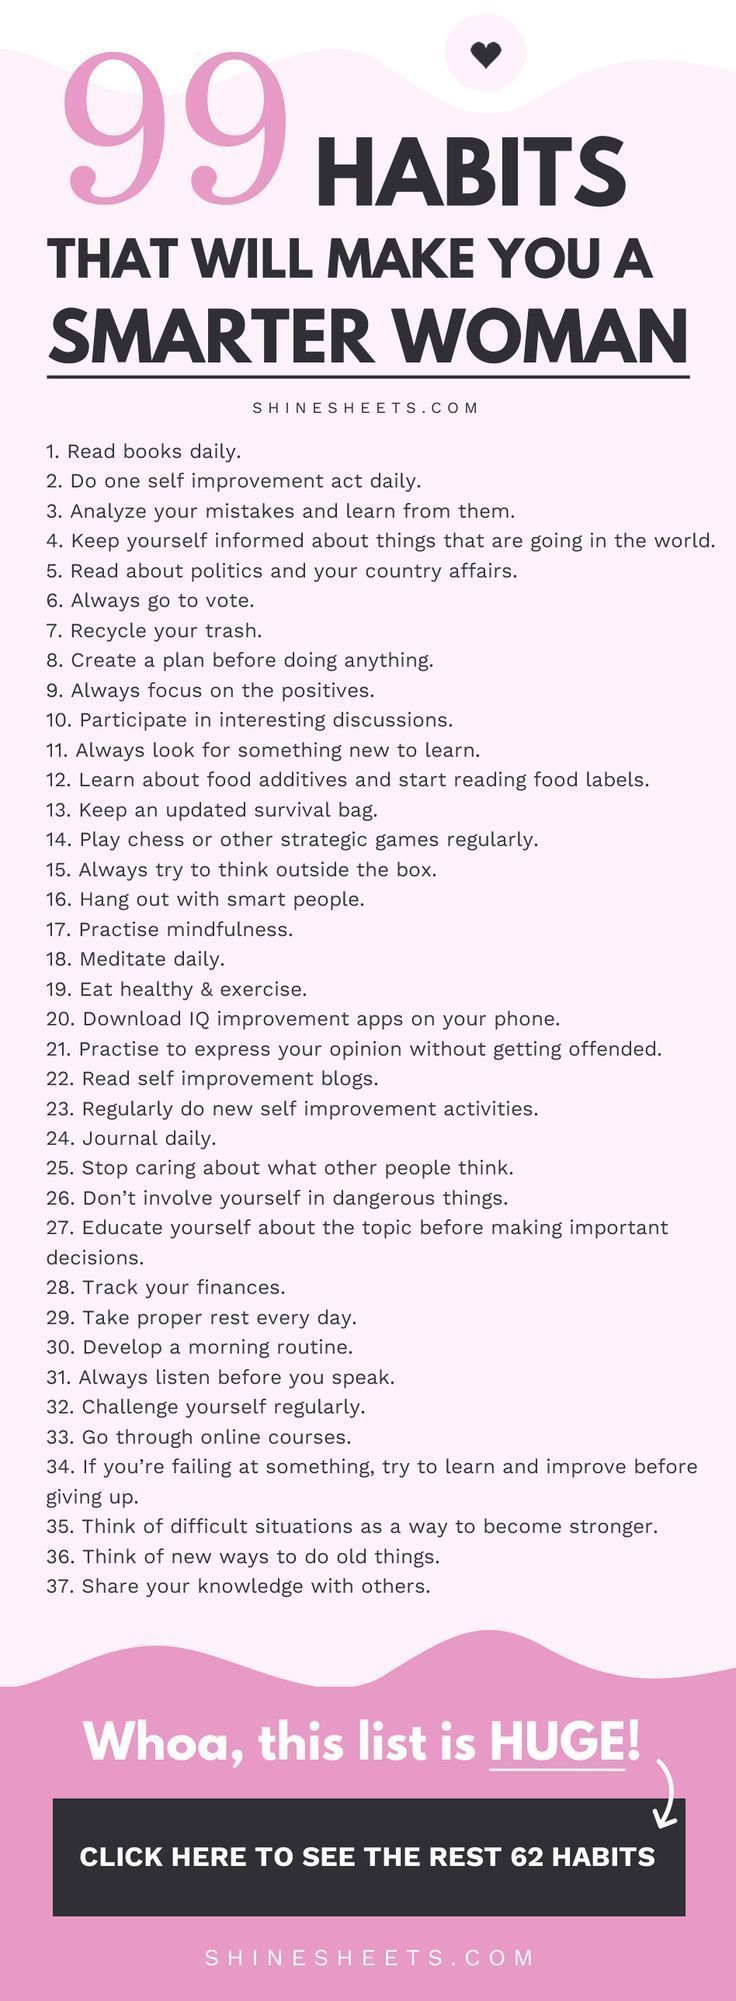 I need to go through this list and do this stuff